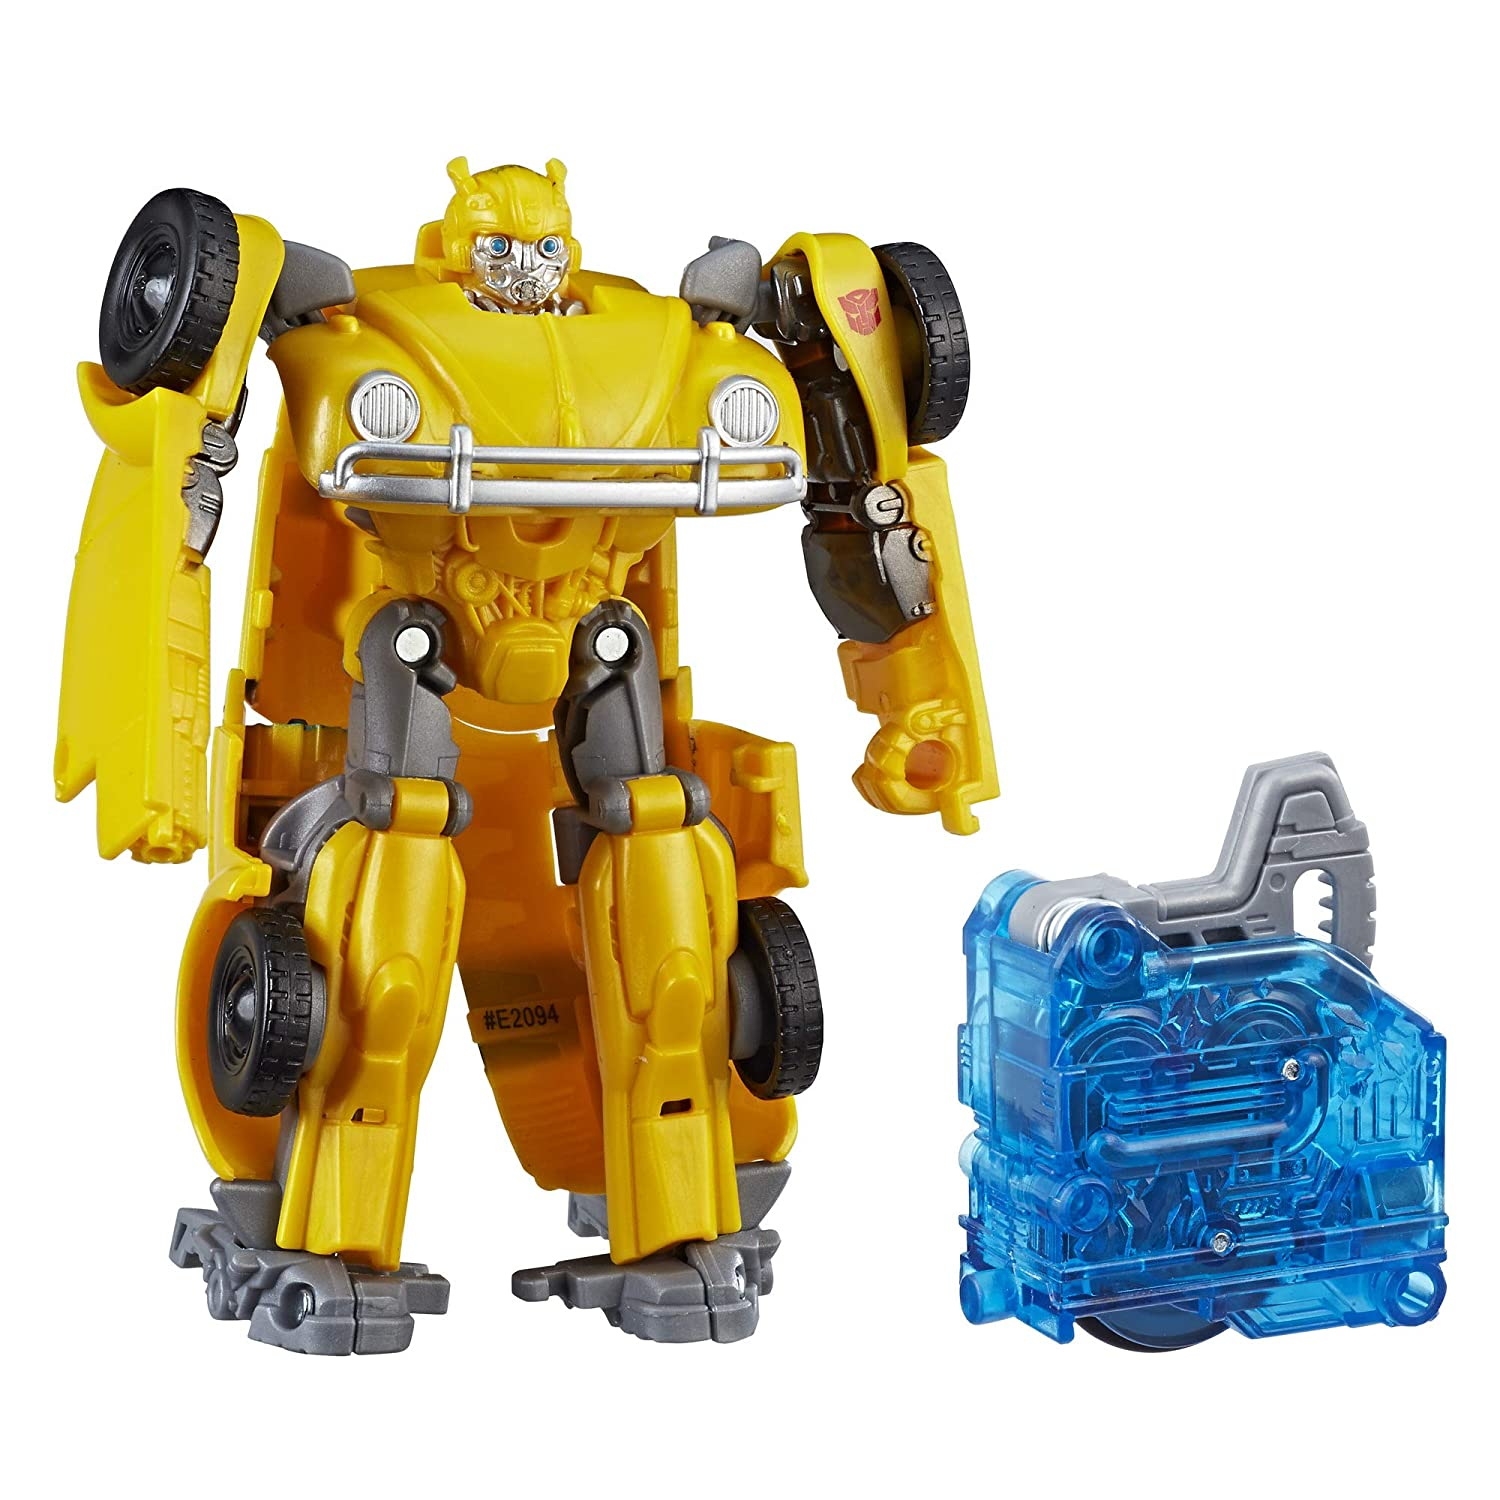 Transformers: Bumblebee -- Energon Igniters Power Plus Series Bumblebee Hasbro E2094